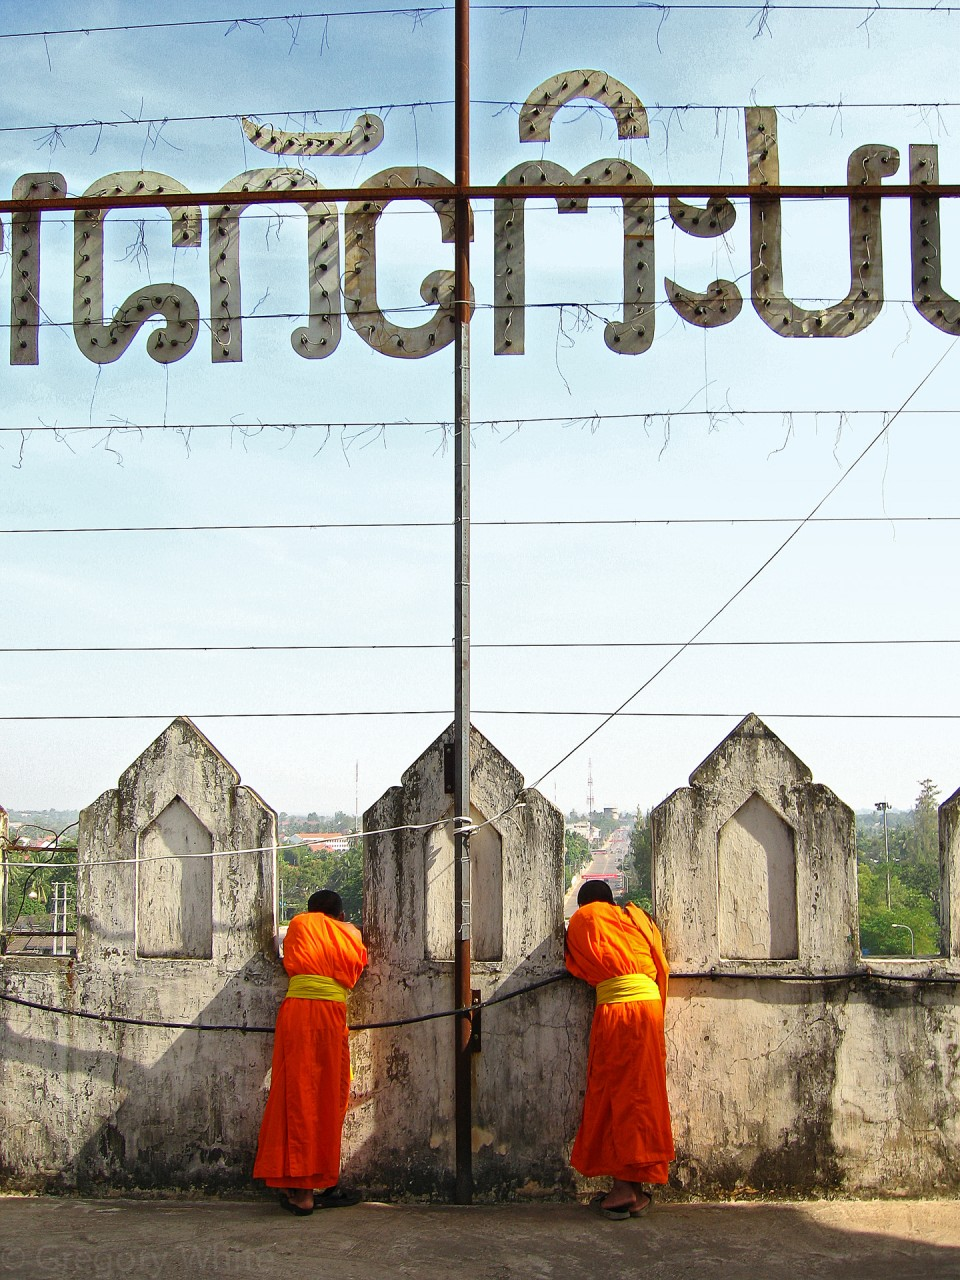 Monks take in the view from the towering concrete national monument in Vientiene, Laos.